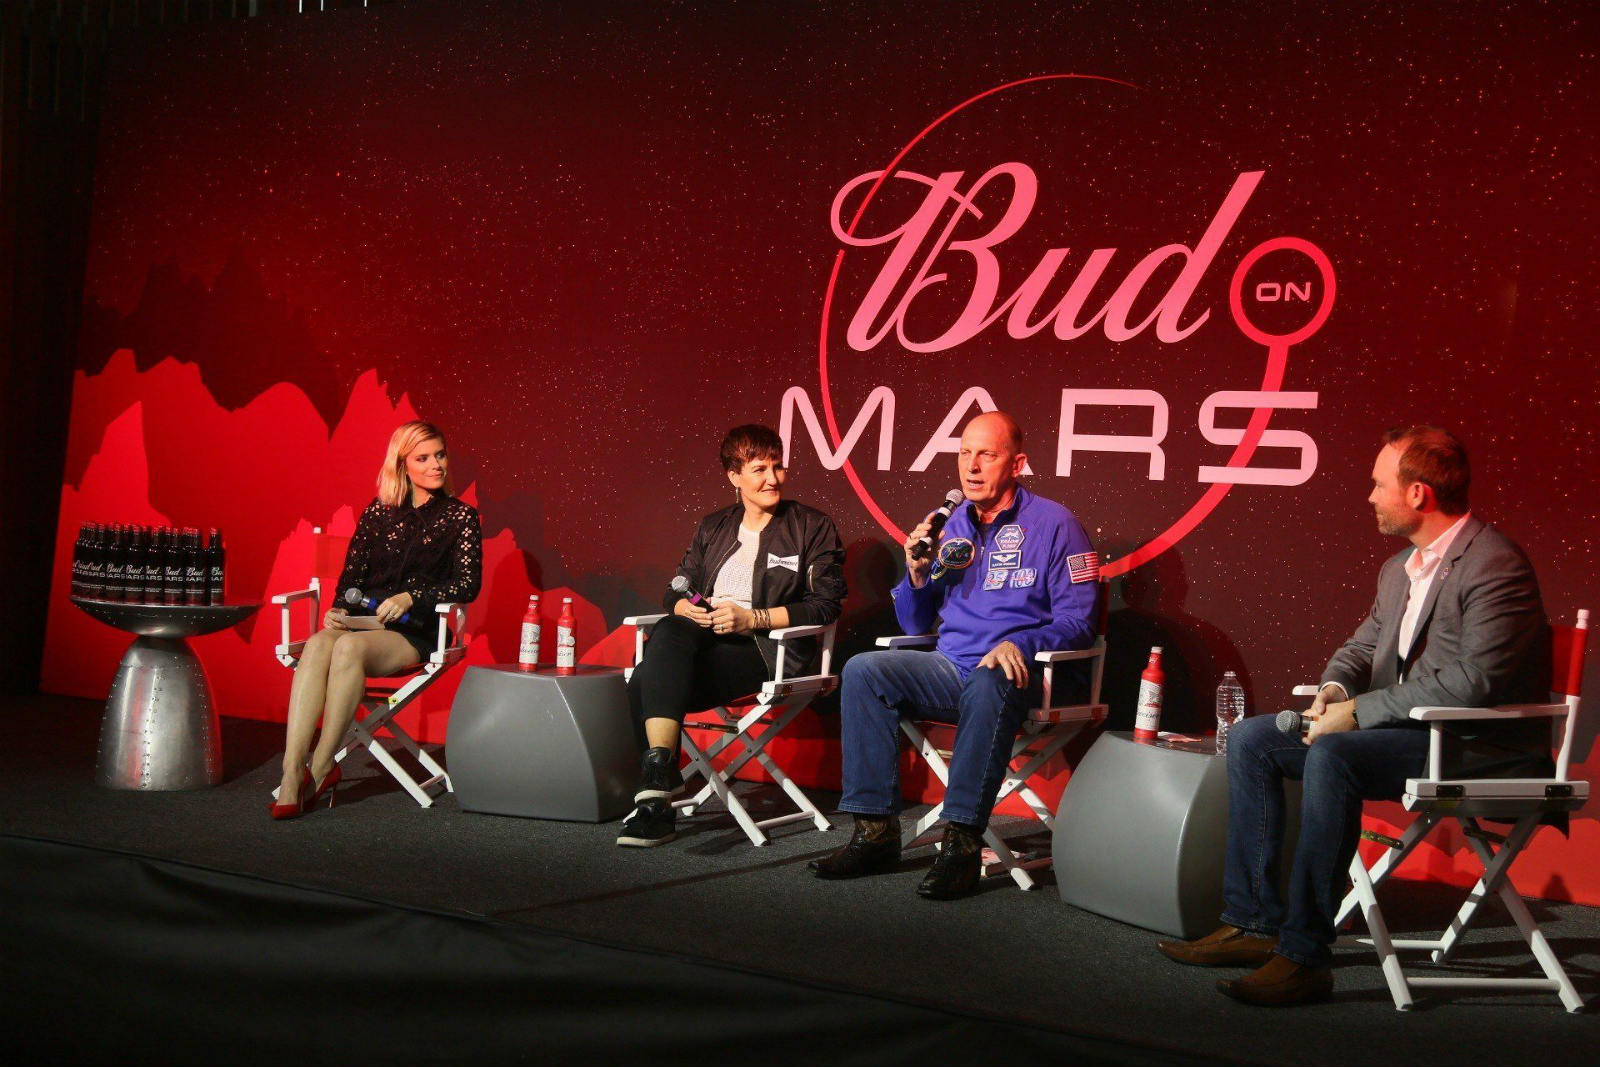 Budweiser is blasting barley into space to brew Mars beer